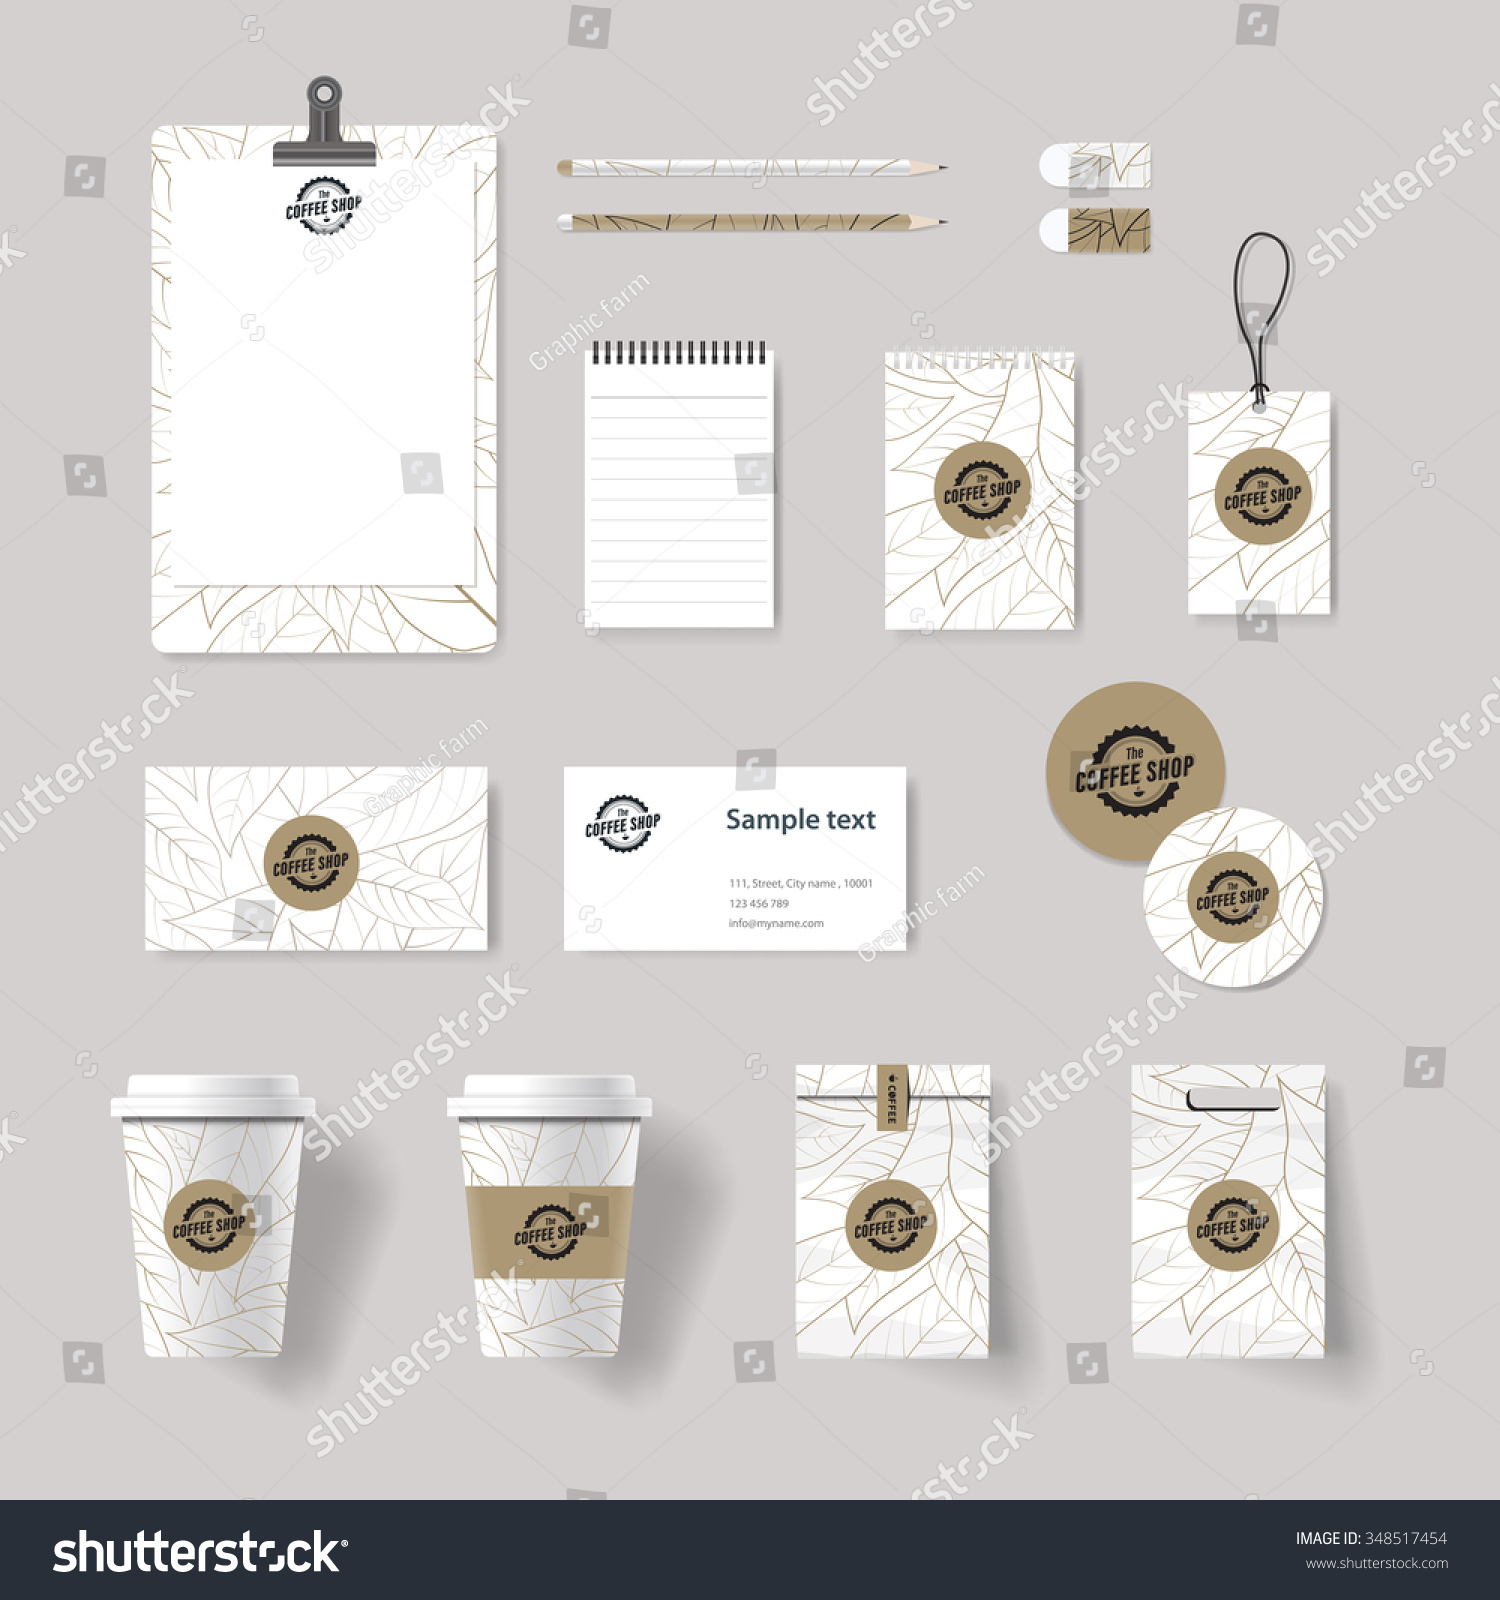 coffee shop and restaurant branding identity mock up template   card  menu vector stationary